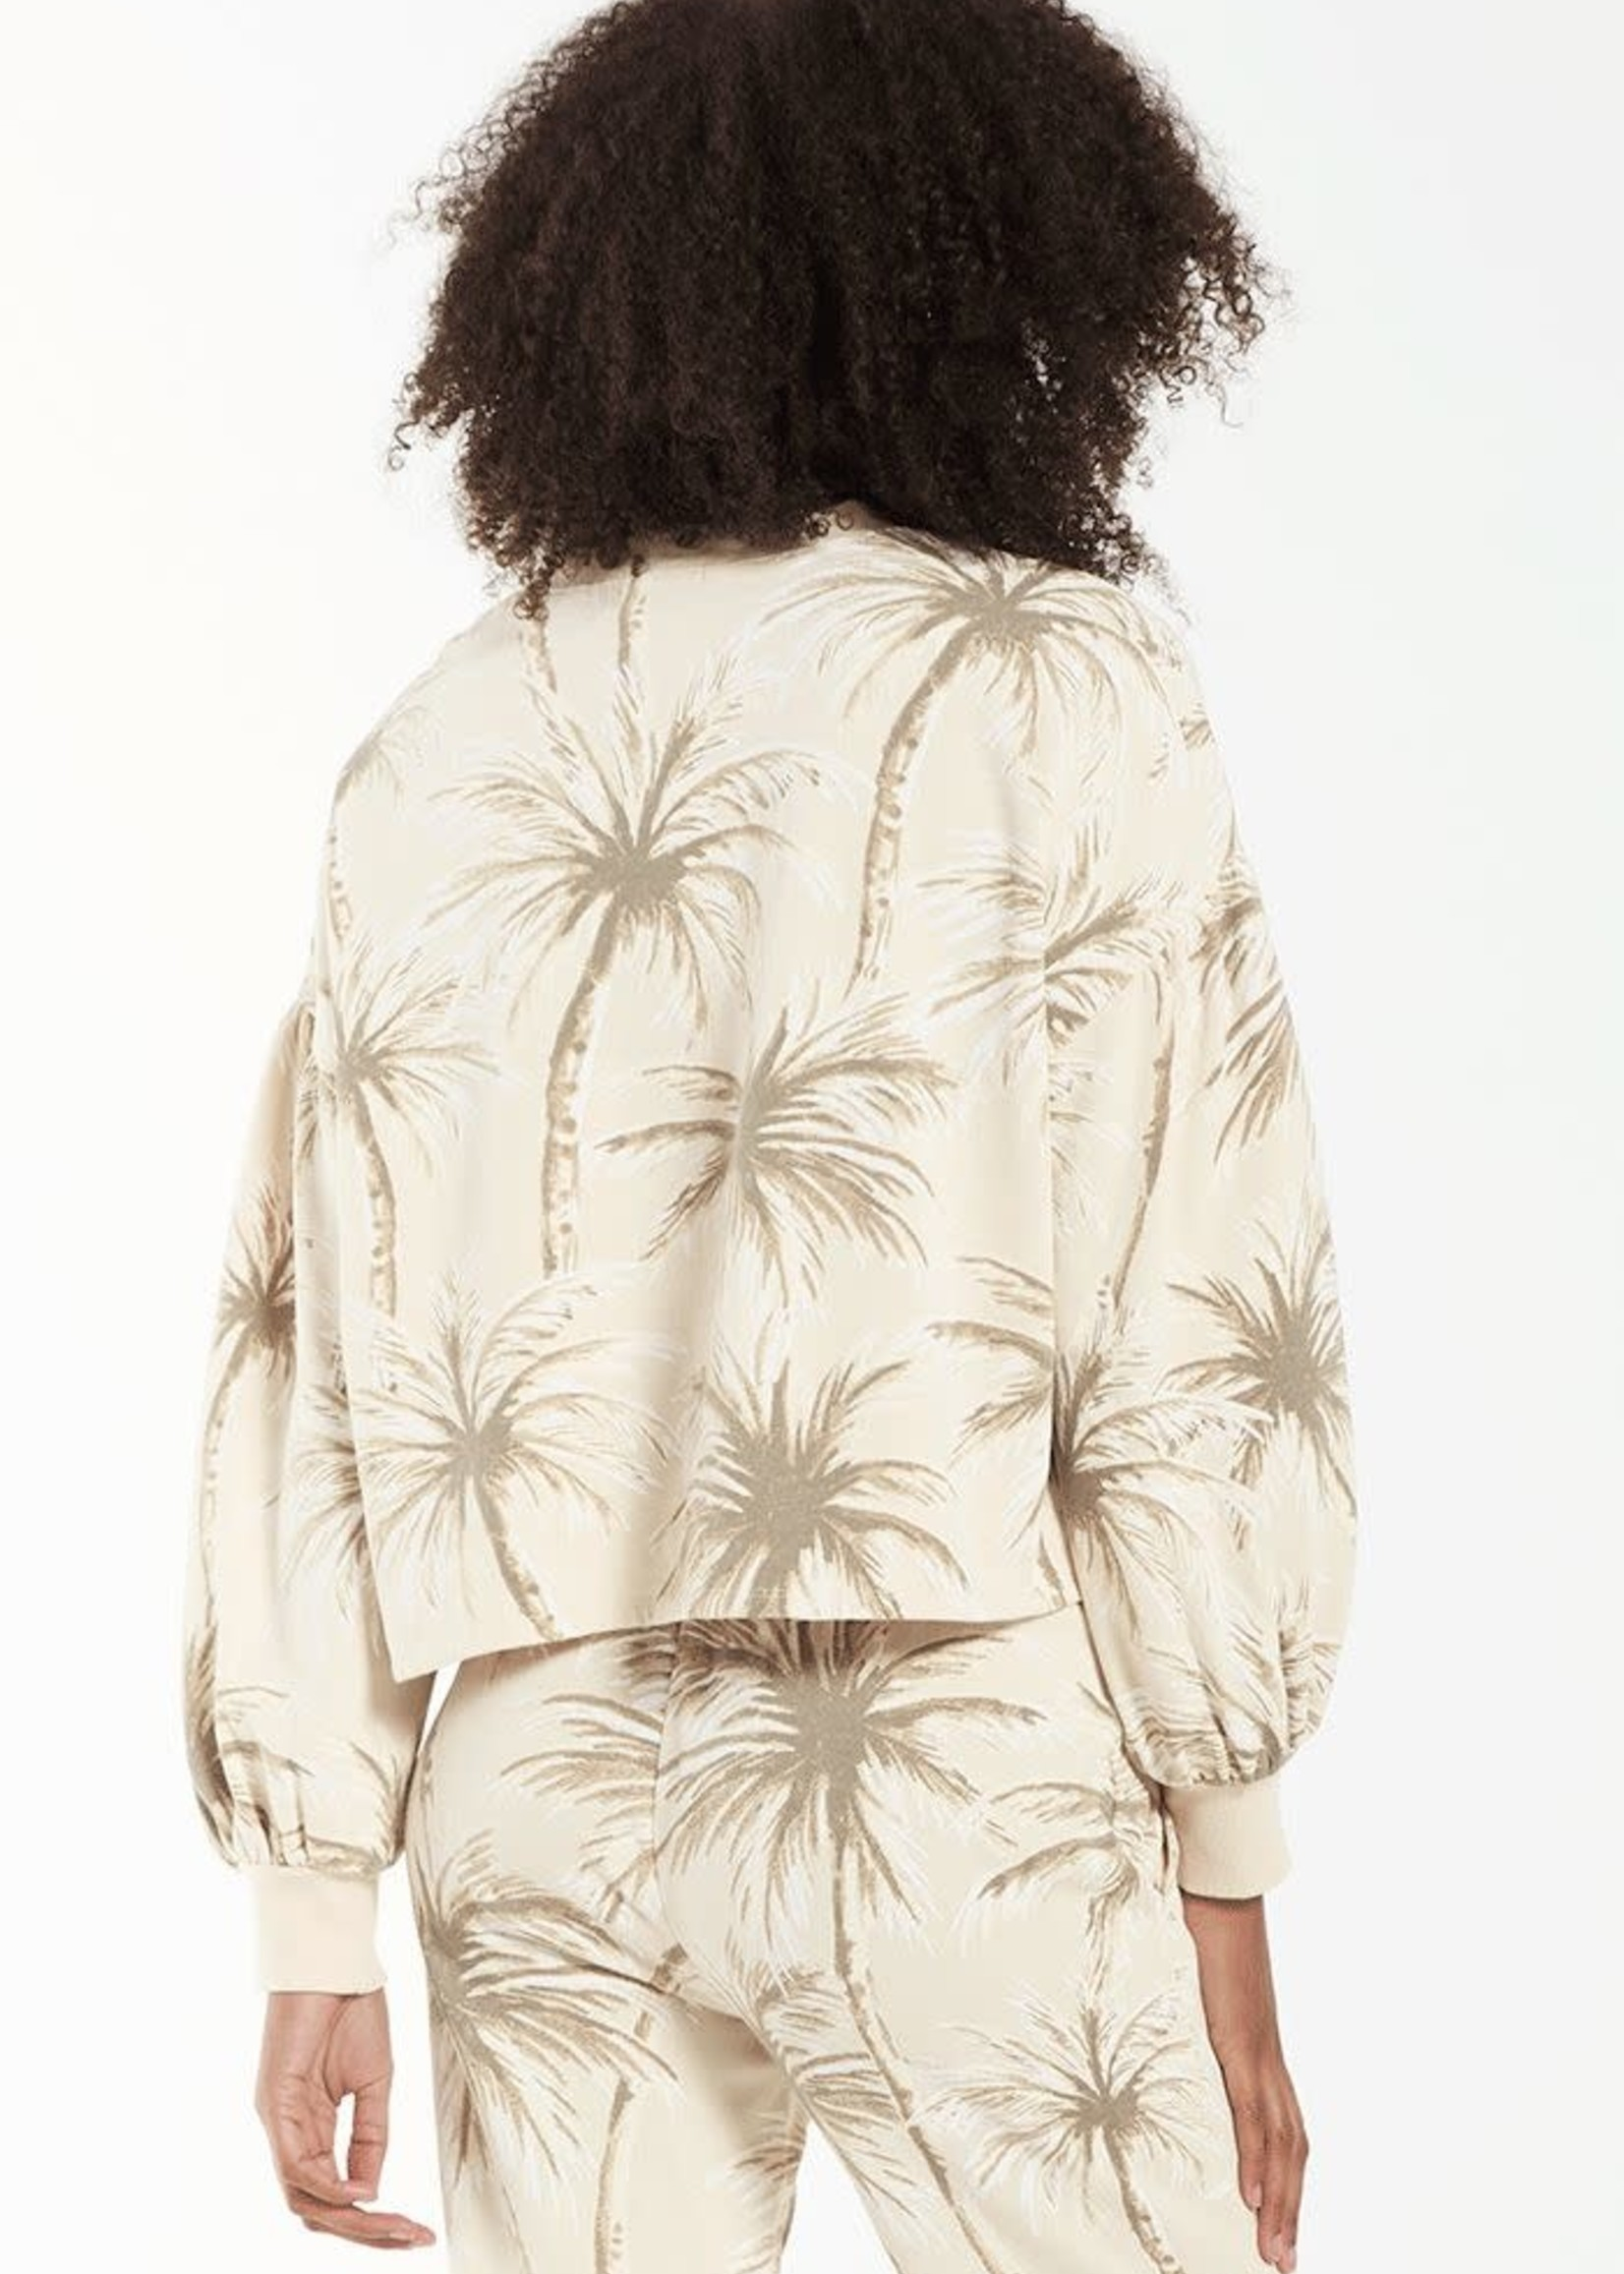 Z Supply Coconut Palm Top